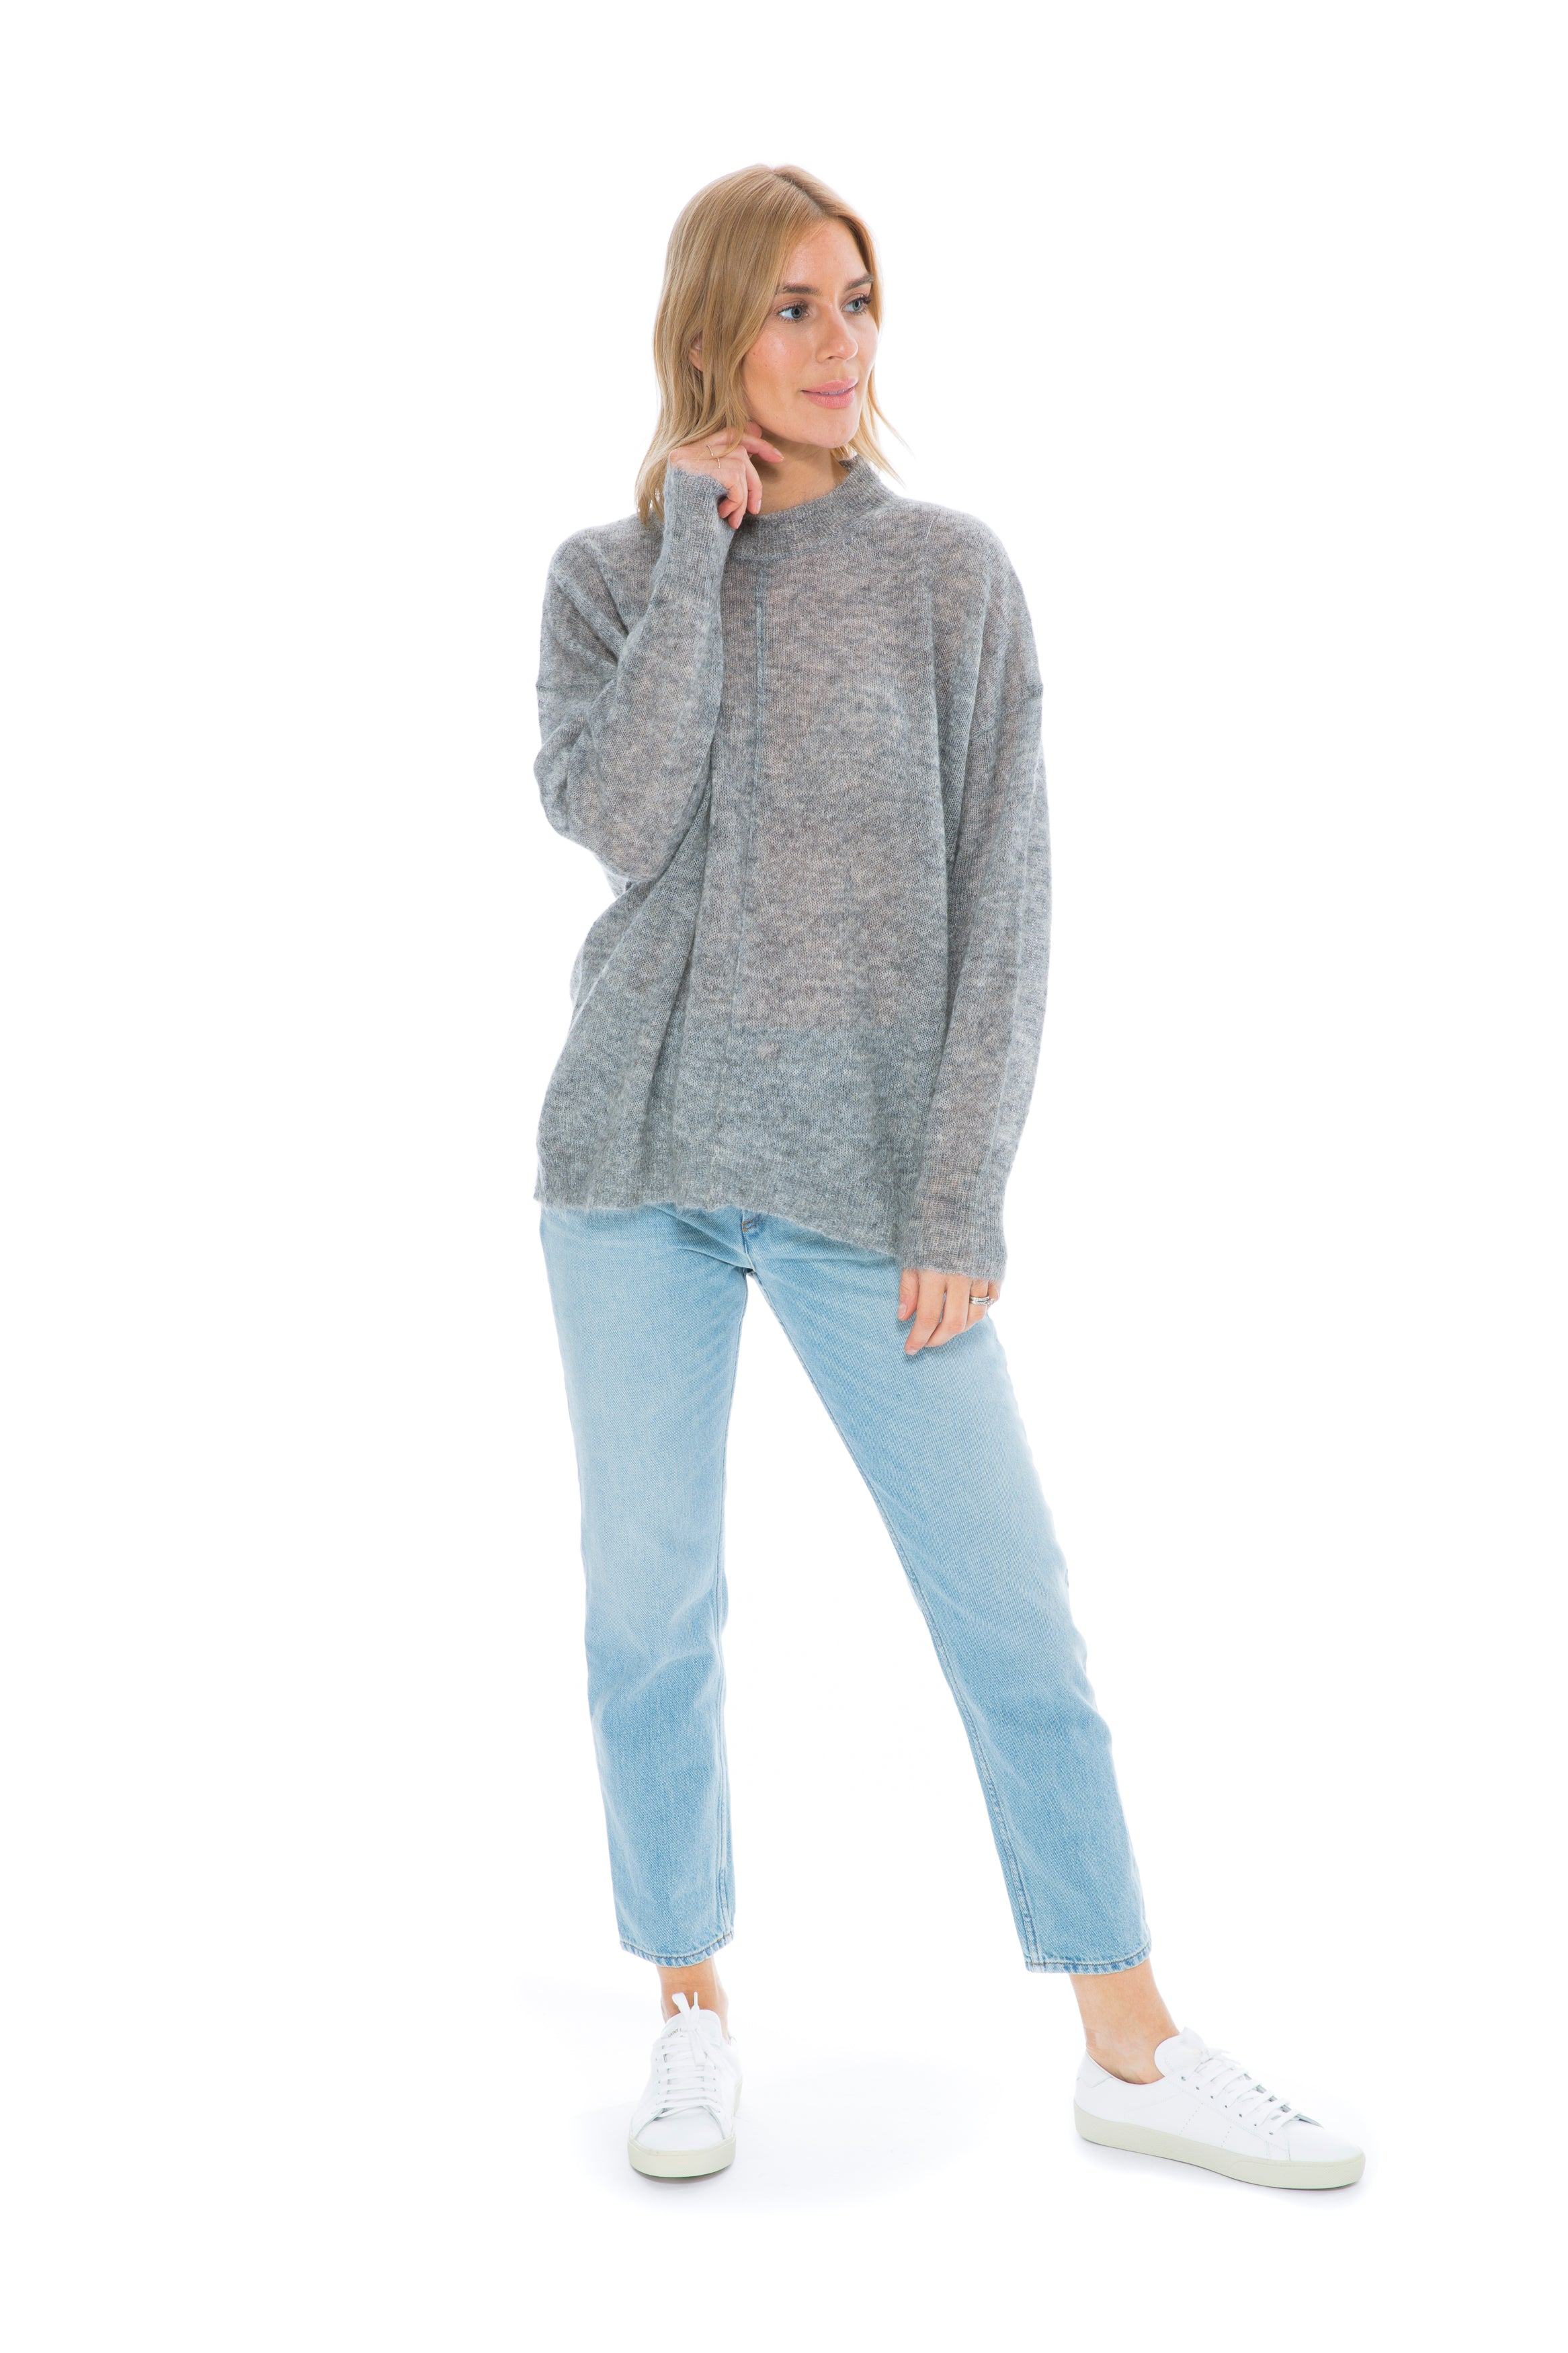 ETOILE CHESTERY LIGHT GREY KNIT